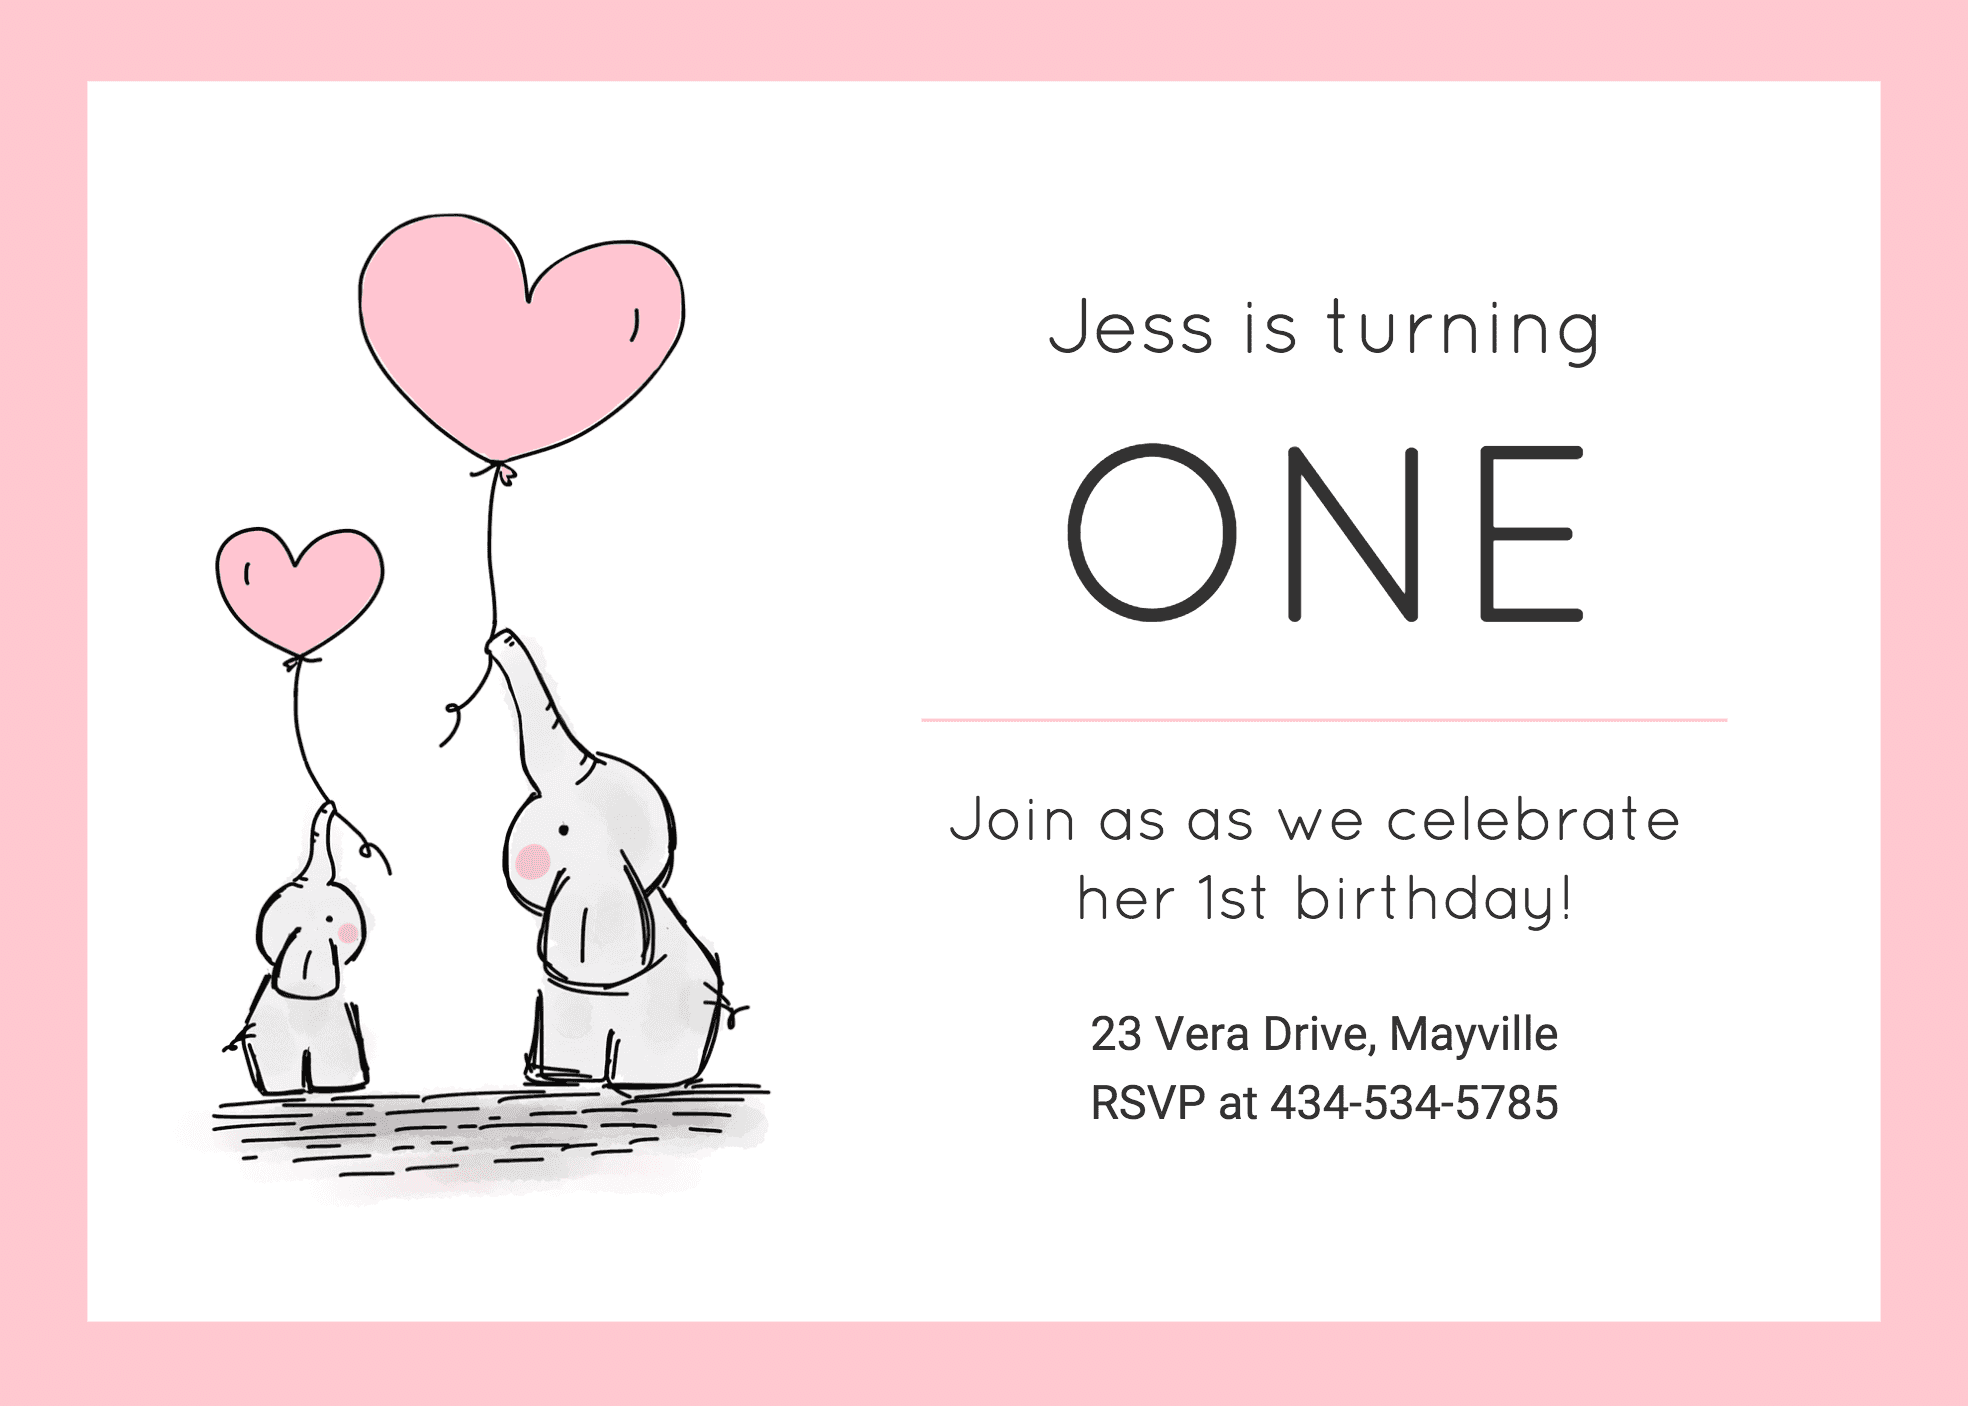 4 Creative Birthday Invitation Card Design Tips [+Templates